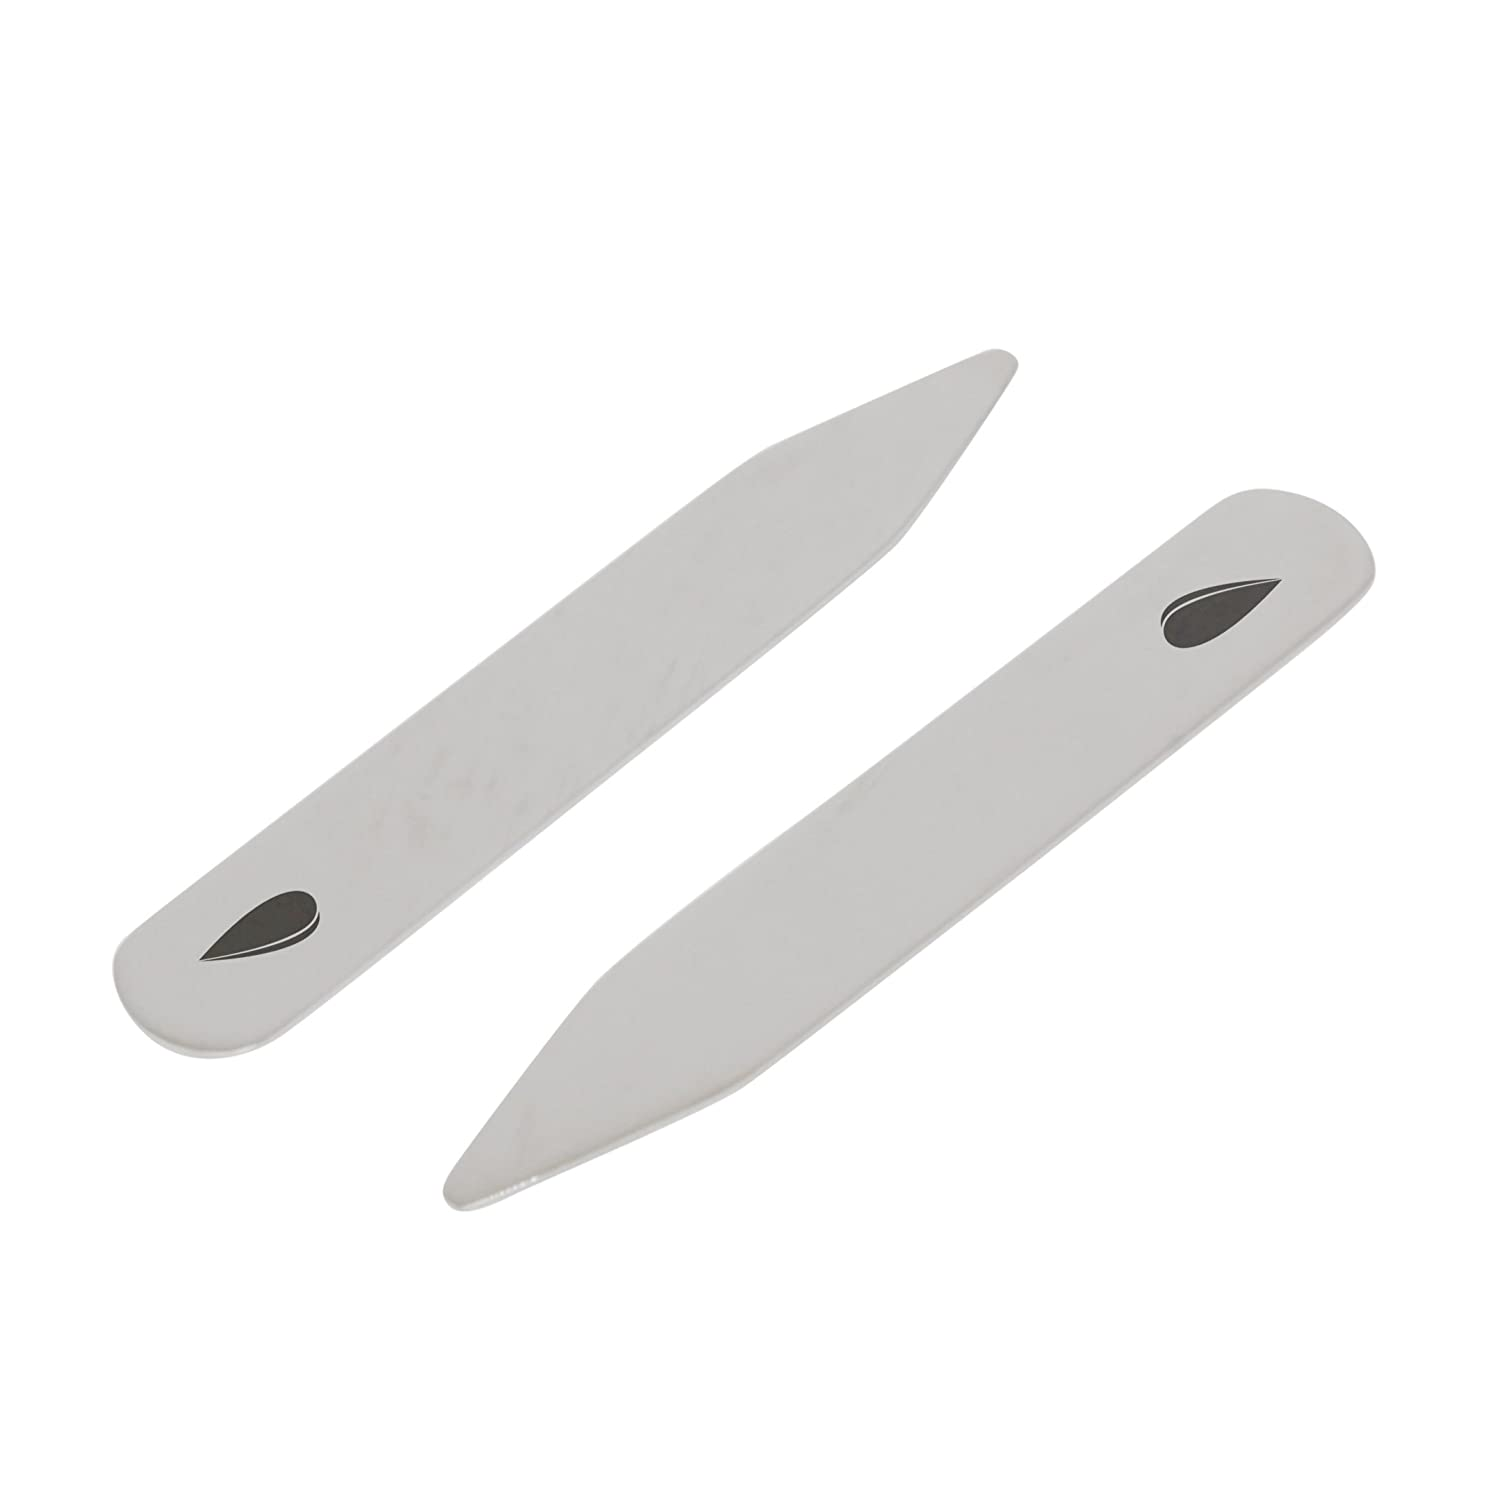 2.5 Inch Metal Collar Stiffeners MODERN GOODS SHOP Stainless Steel Collar Stays With Laser Engraved Mussel Design Made In USA